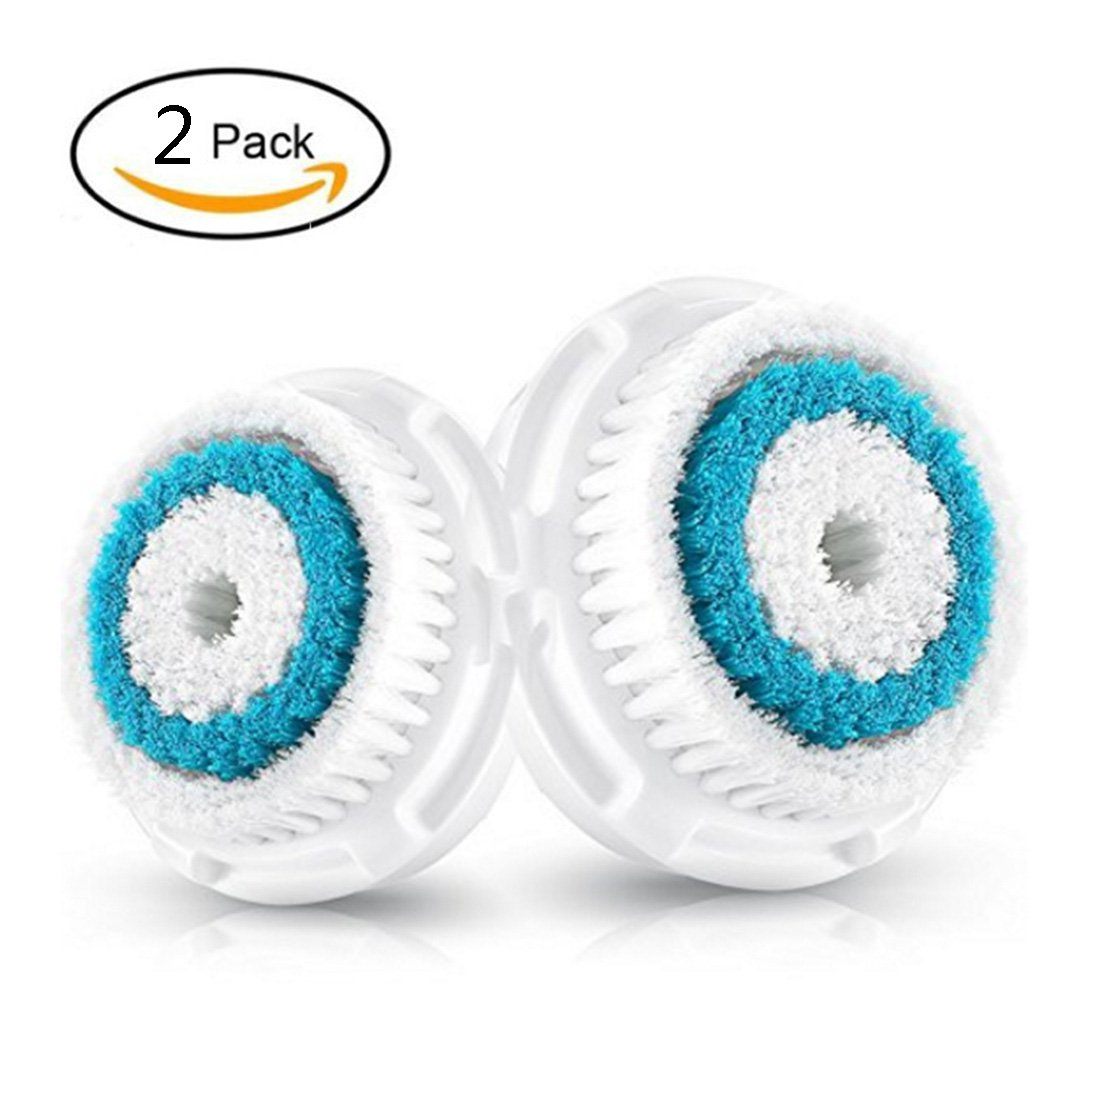 2-Pack Deep Pore Cleanse Brush Head Replacement for Facial Cleanser | Compatible with Mia, Mia2, Mia3 (Aria), Mia Fit, Alpha Fit, Smart Profile, PLUS, PRO